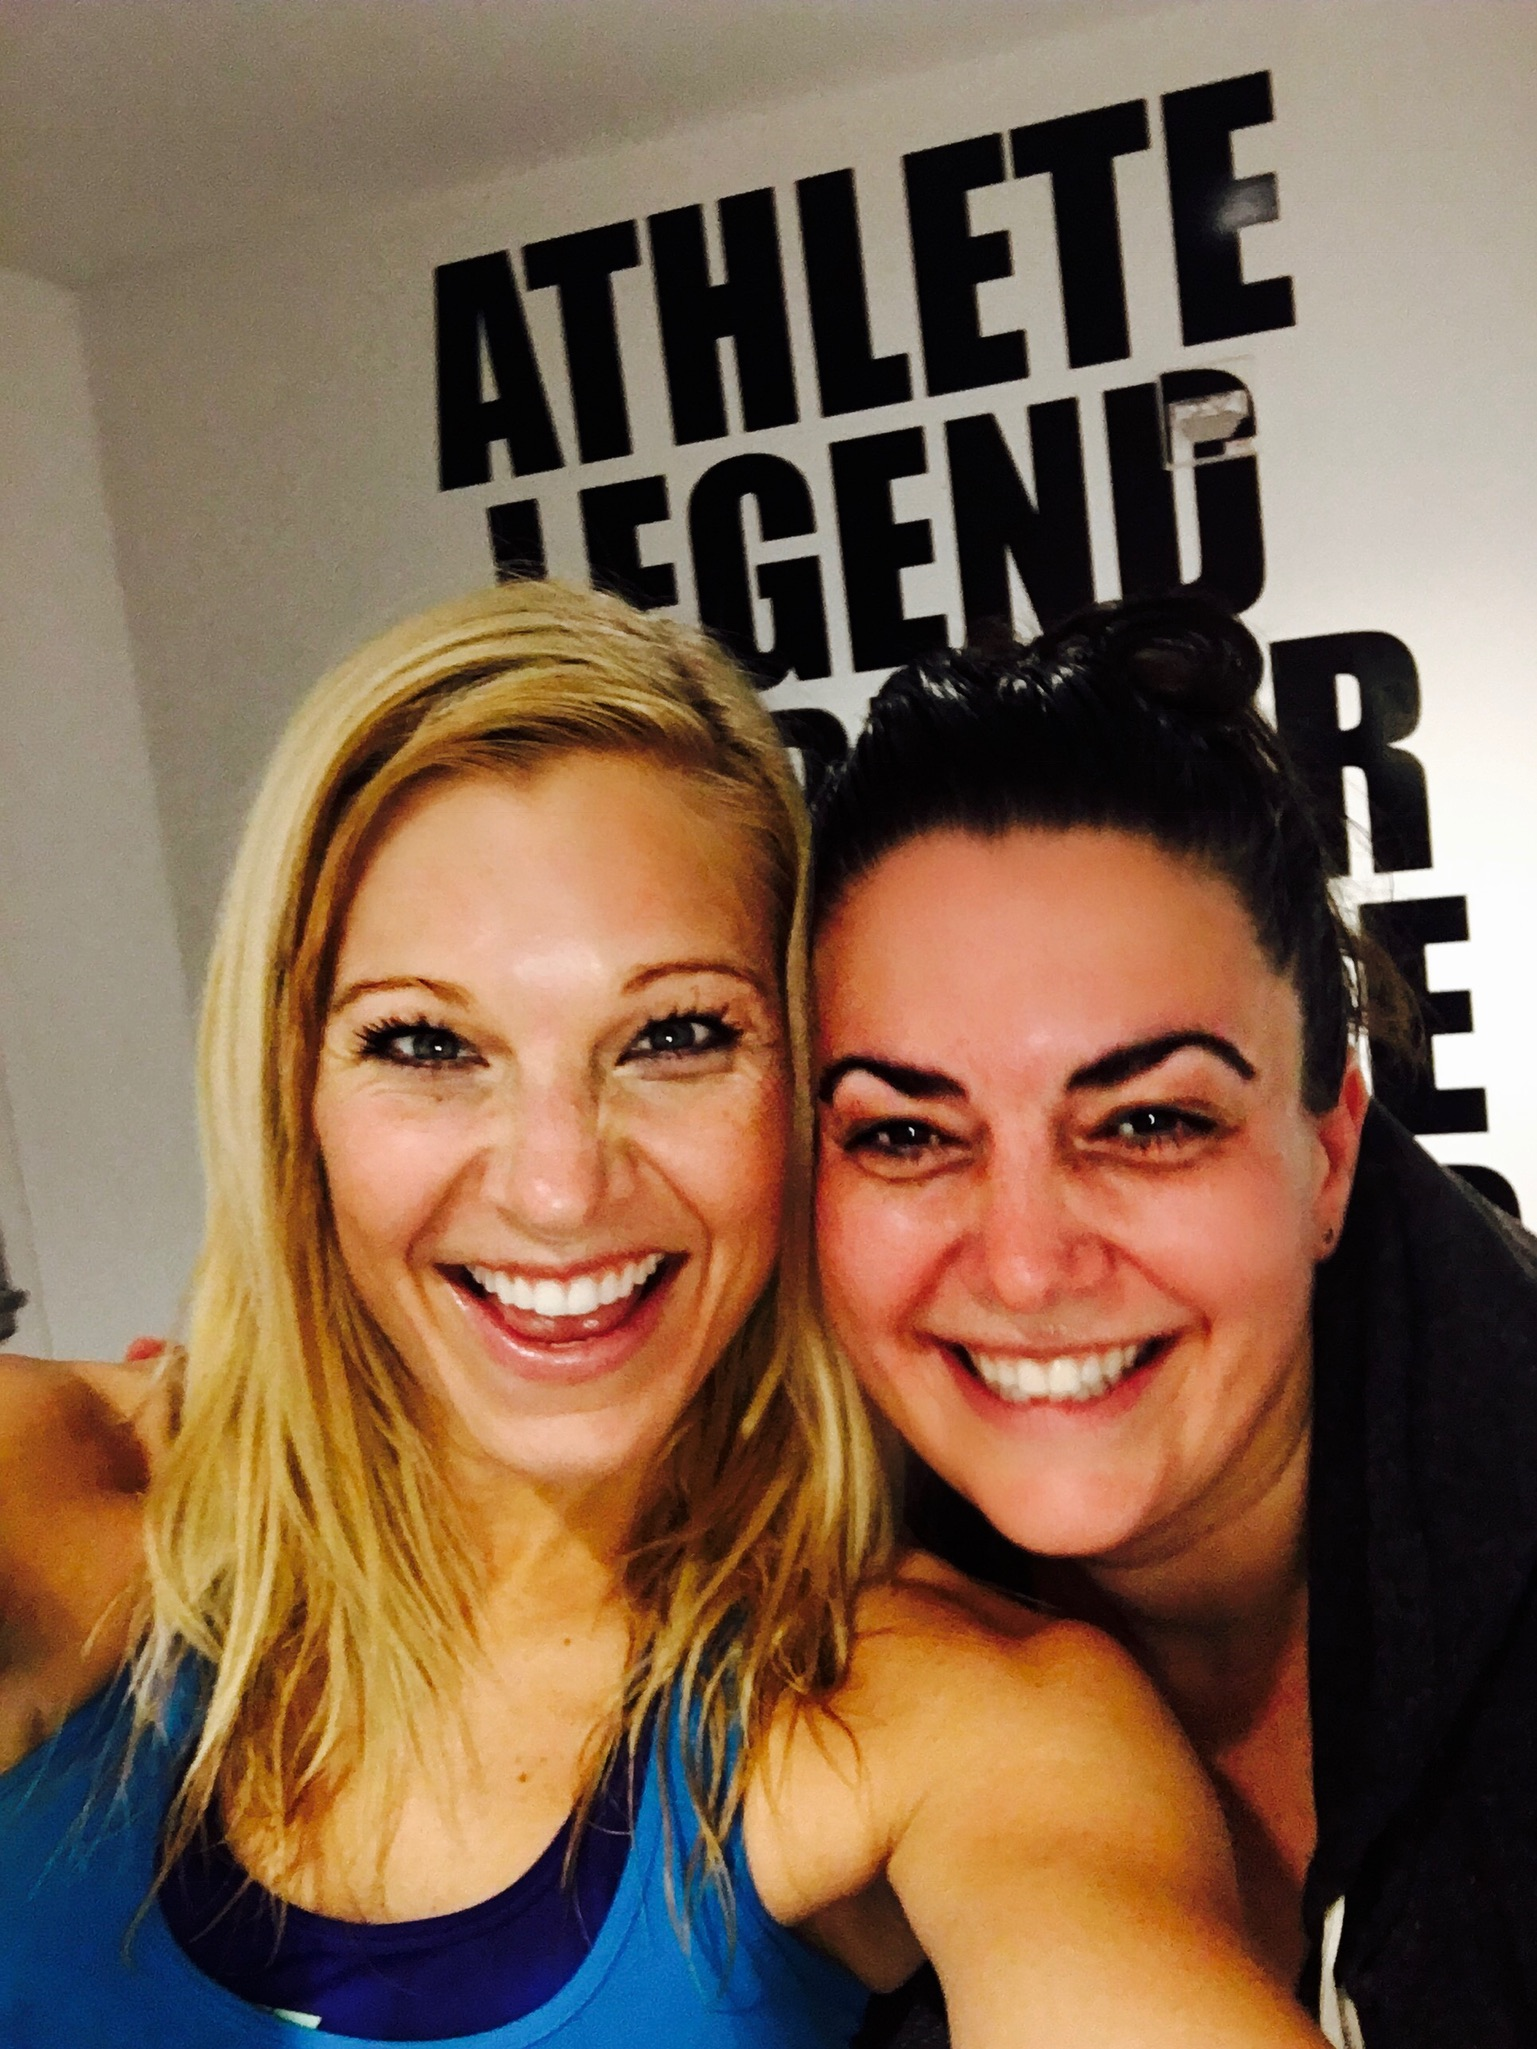 Sweaty and smiley after a Soul Cycle class in New York City with a girlfriend! #WestVillage